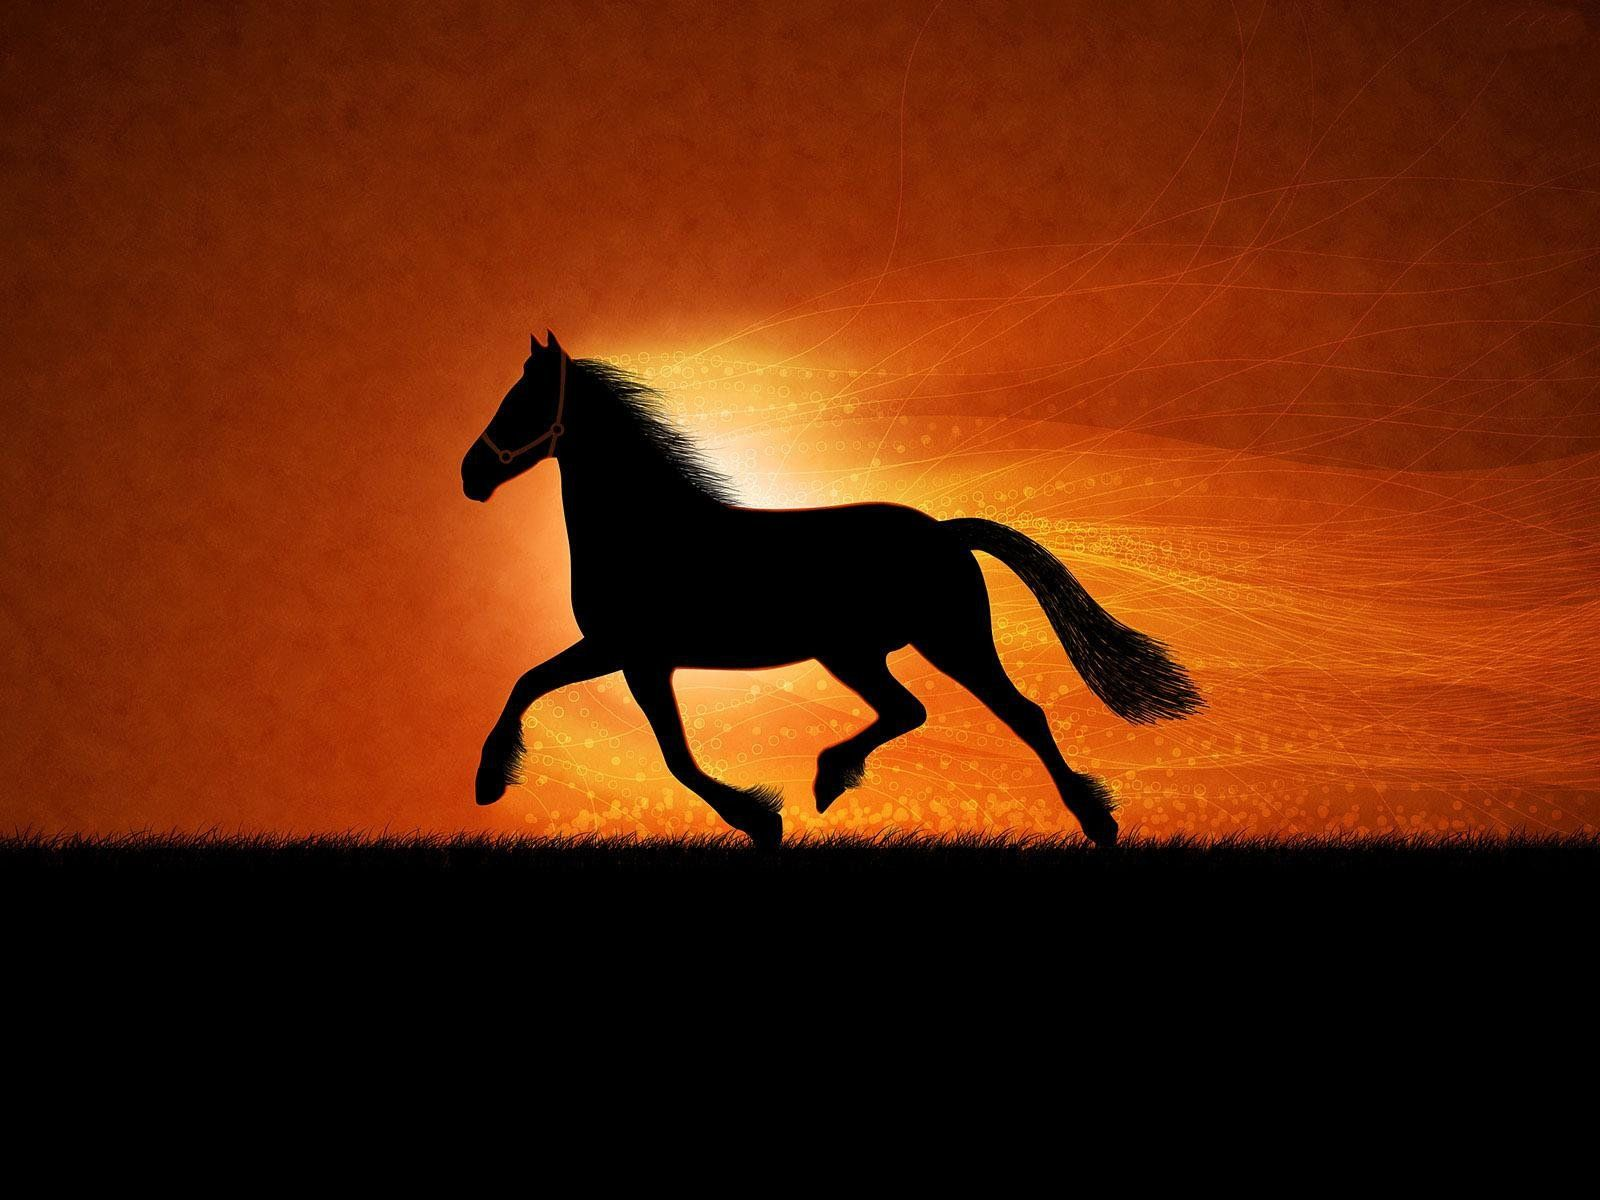 Beautiful Wallpaper Horse Iphone 5c - 22474677759e5b1e791e15f6da82de0a  Picture_93754.jpg